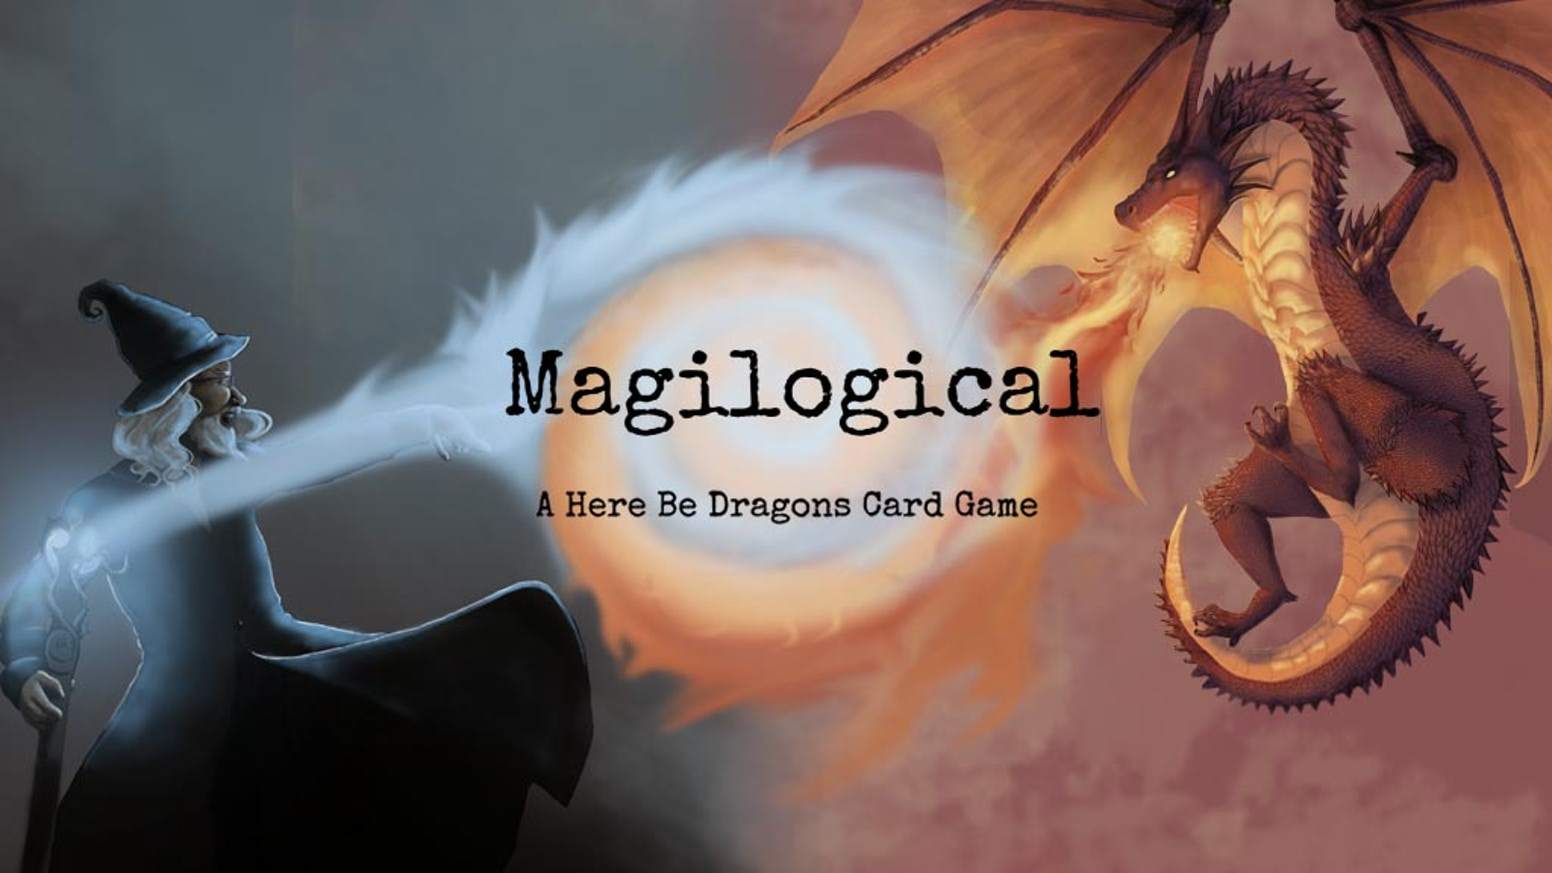 Magilogical is a simple card game that has been designed to introduce the concept of Logic Gates. Fantasy and Magic meet Computing.